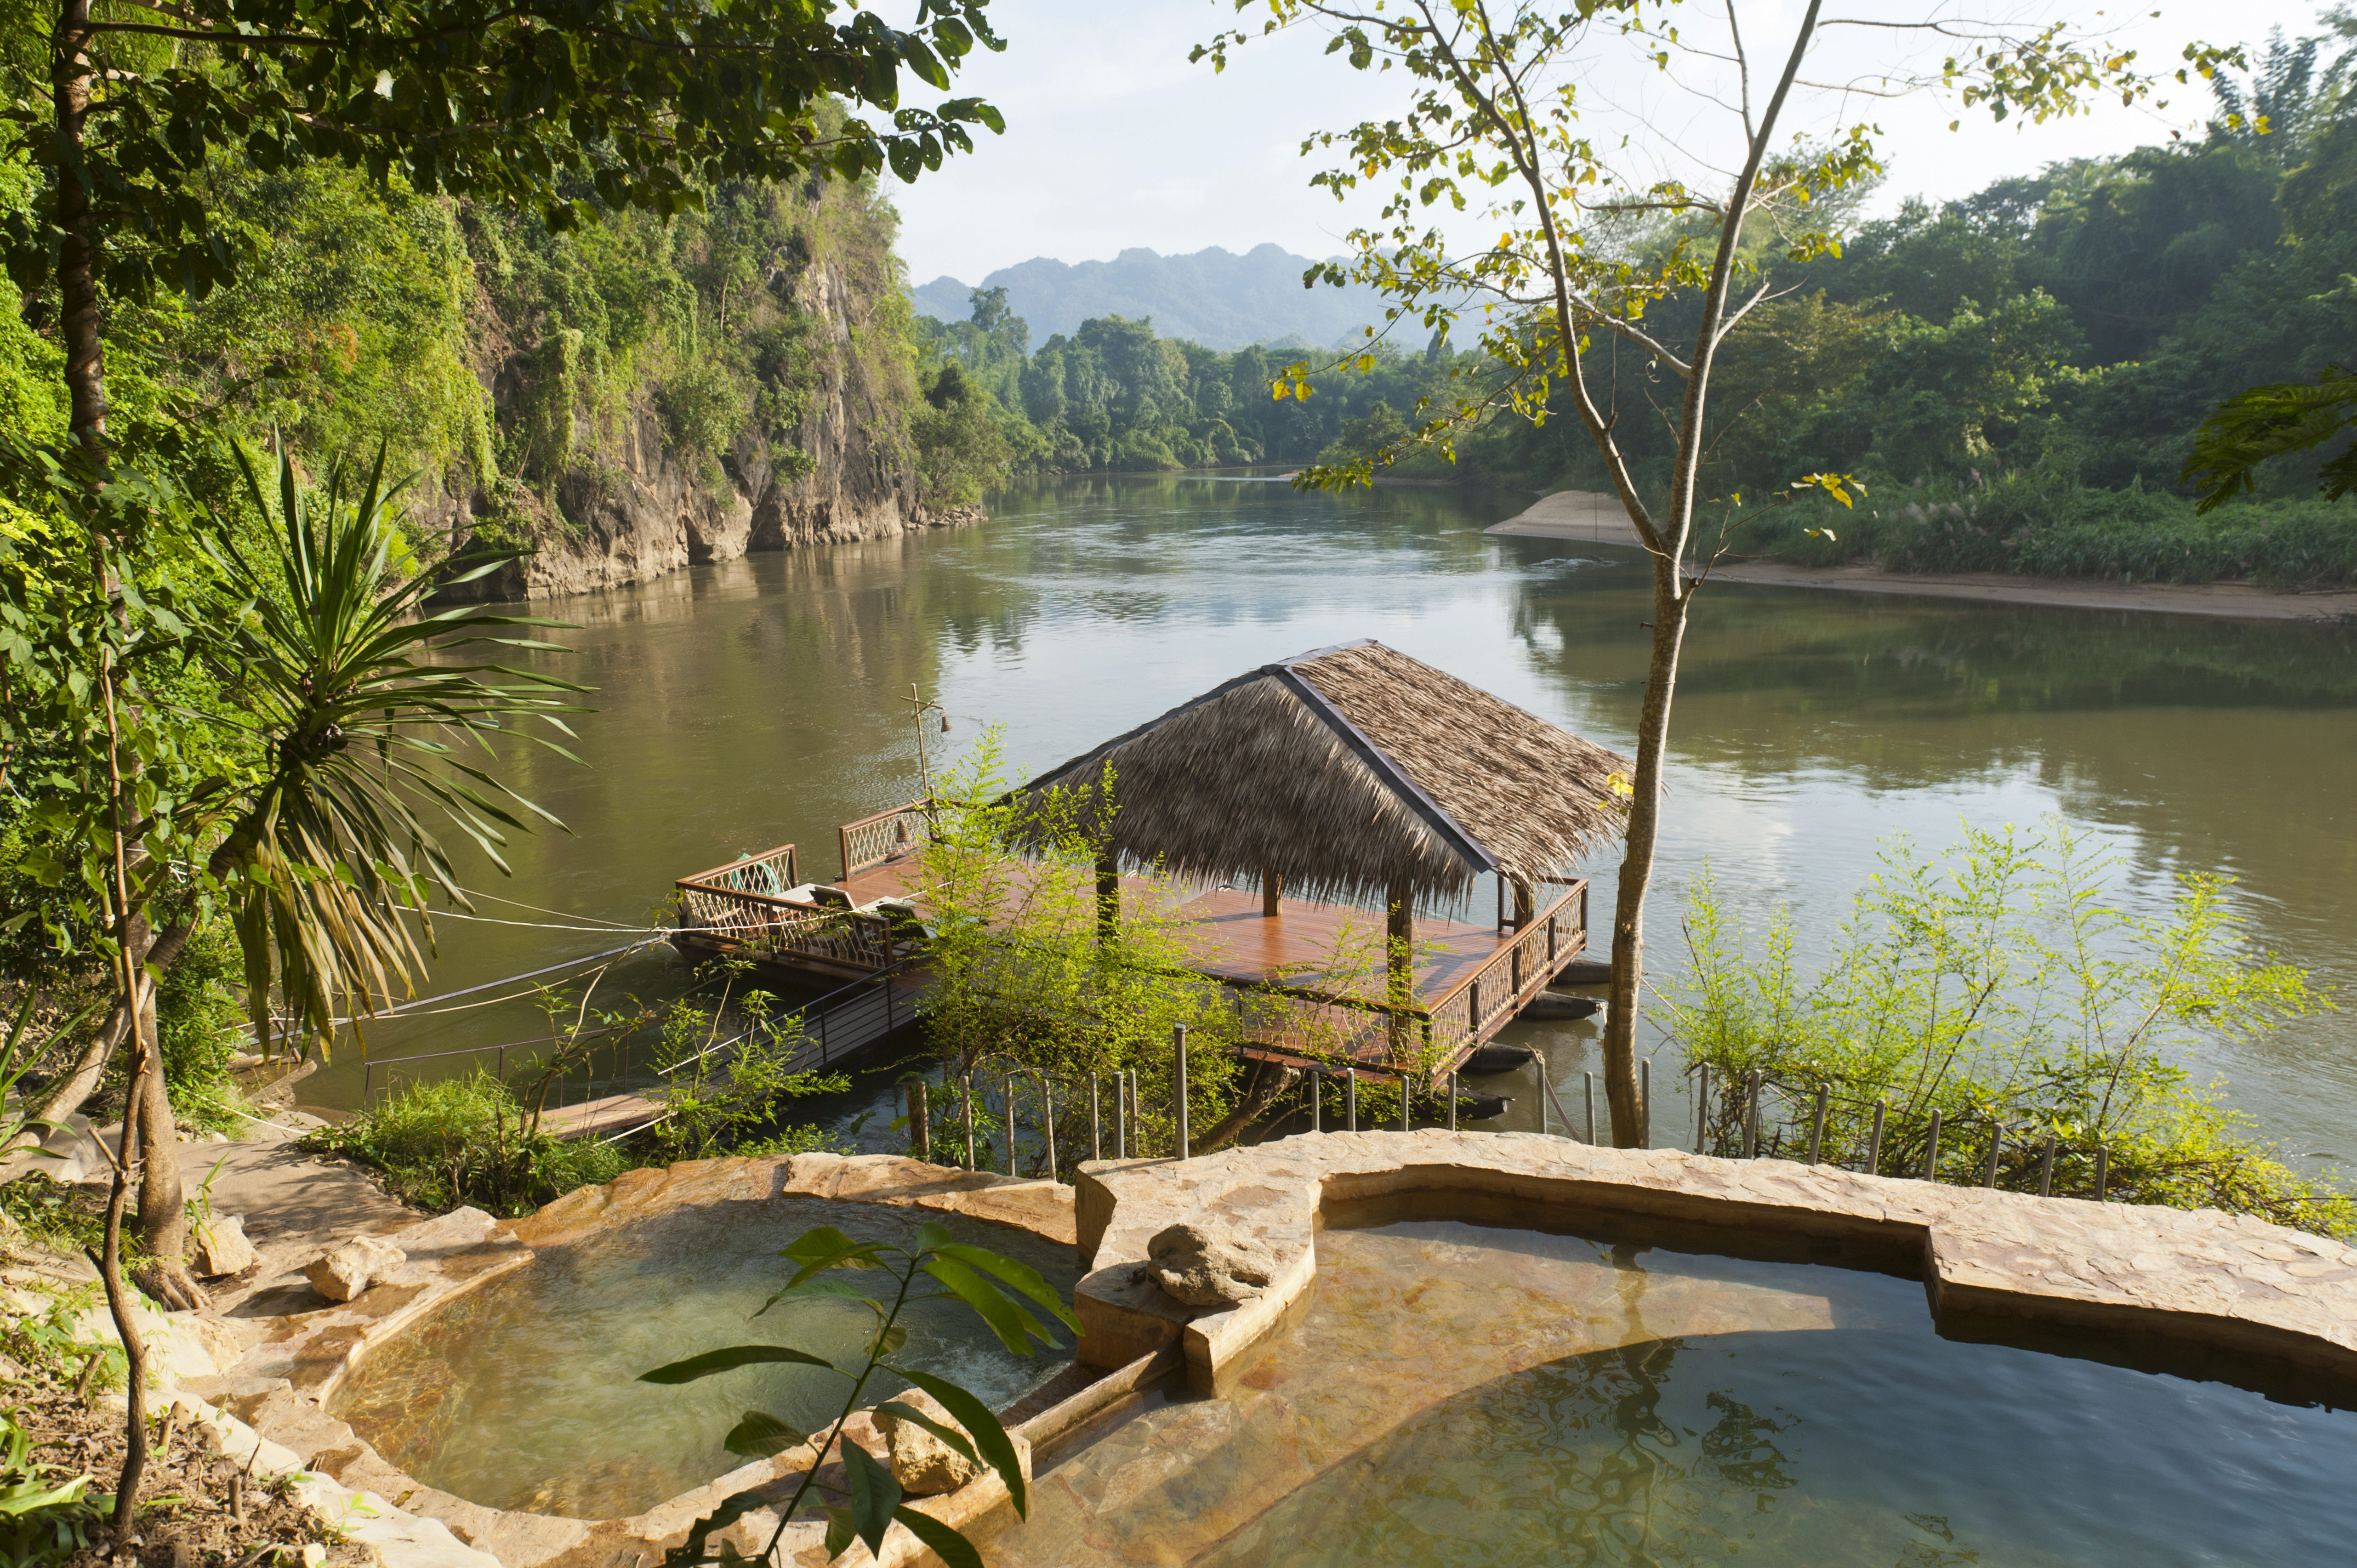 A floating hut and pool by the river in Kanchanaburi, Thailand